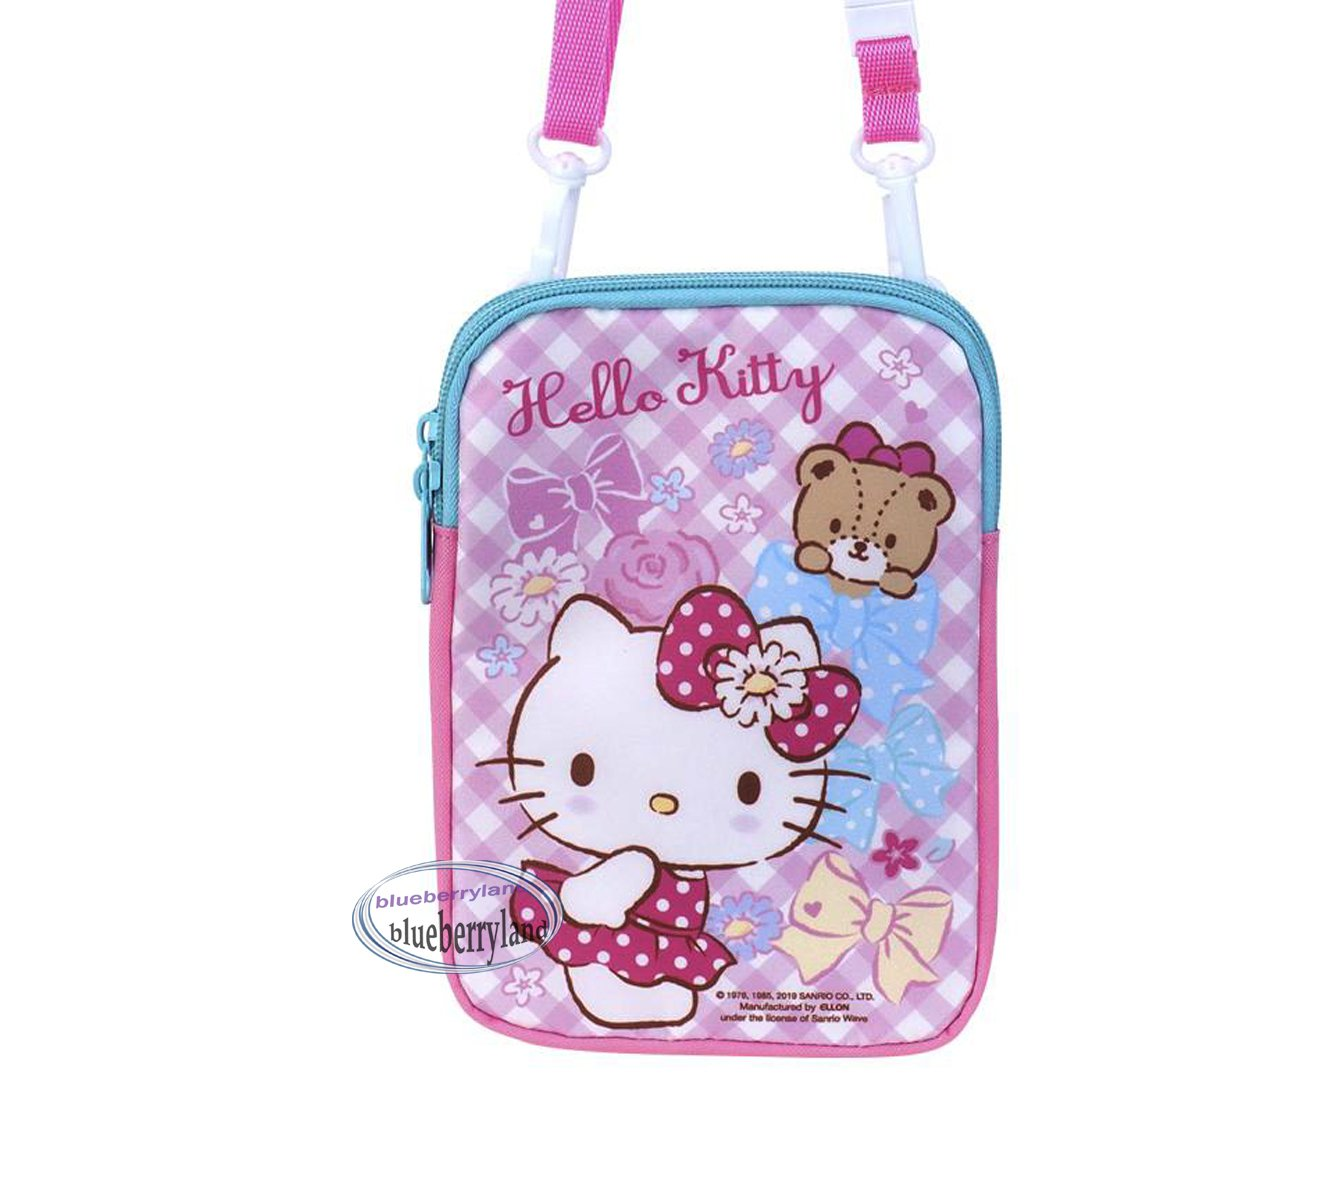 Sanrio Hello Kitty small Shoulder Cross Body Pouch Bag Causal Bags girls kids